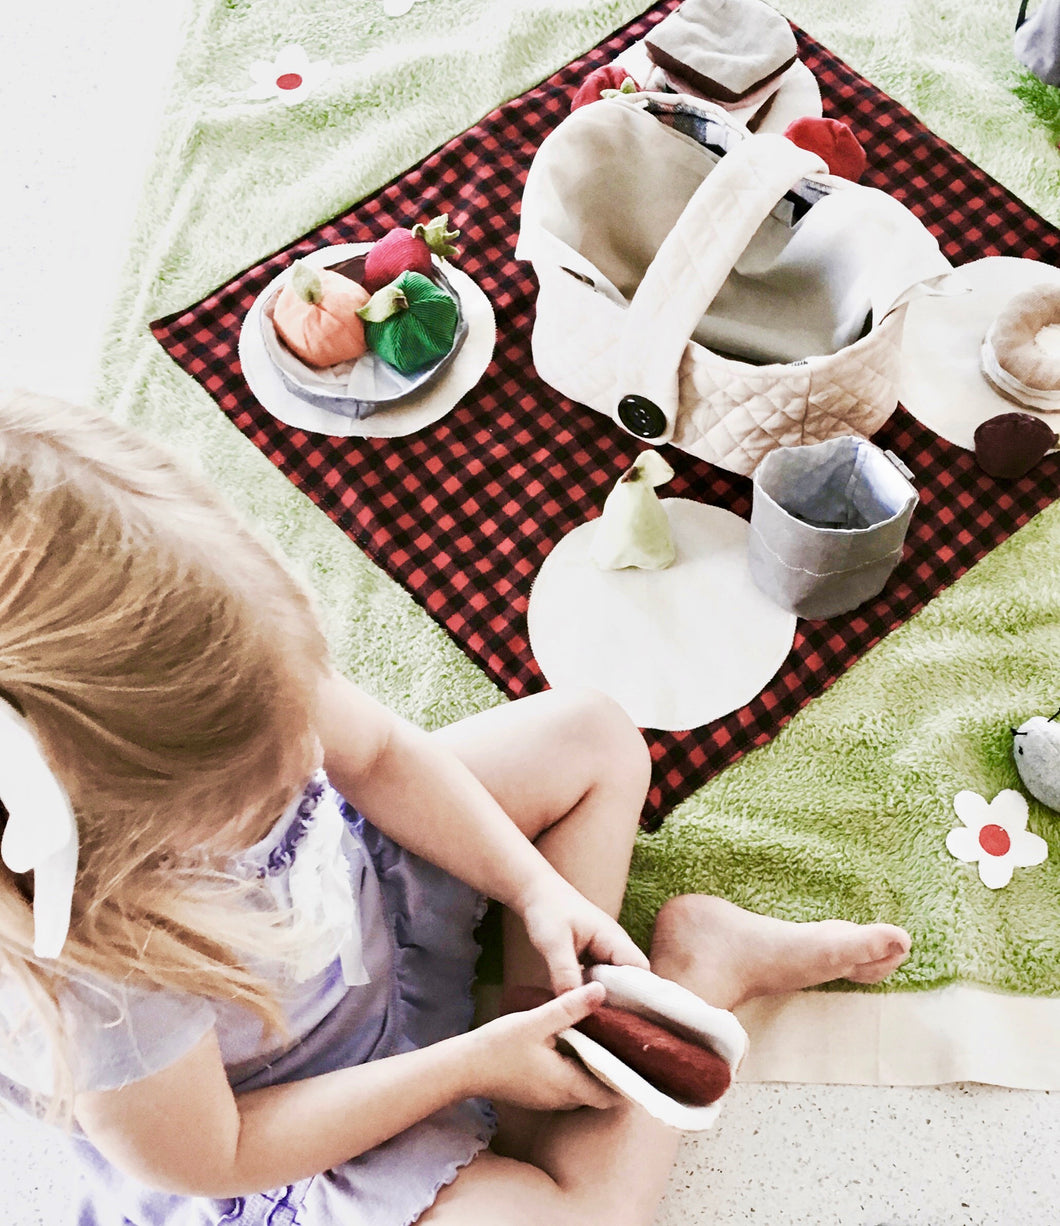 Picnic Blanket with Play Food